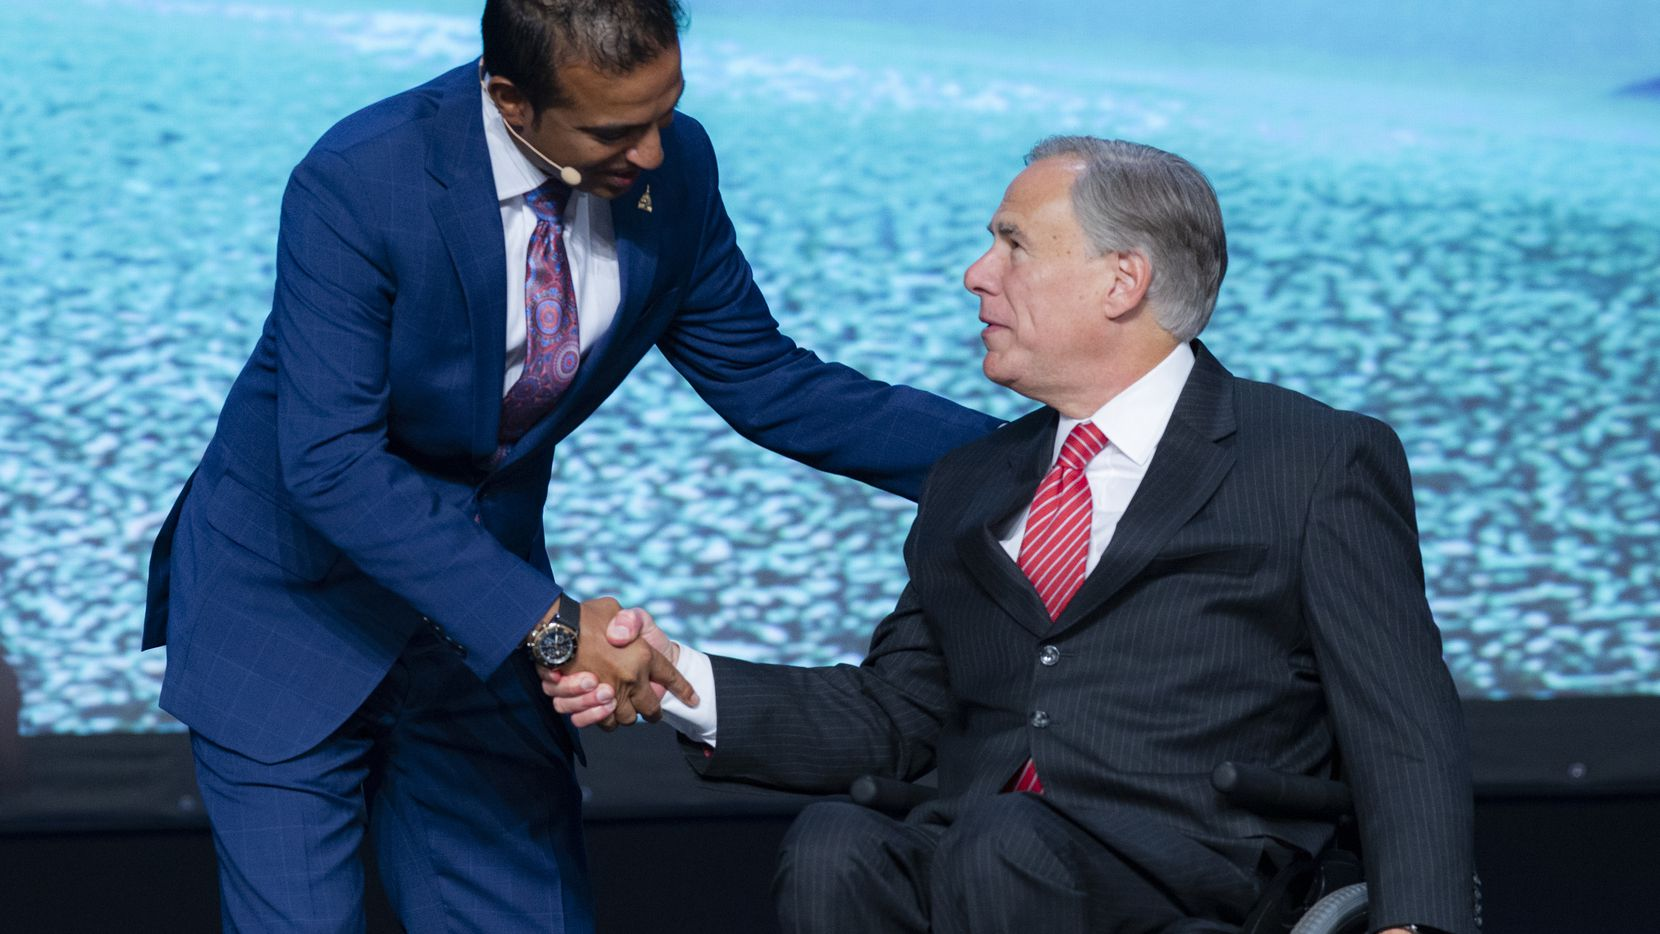 Asian American Hotel Owners Association Chairman Biran Patel, left, greets Texas Gov. Greg Abbott as the keynote speaker of the AAHOA convention in Dallas, Wednesday, August 4, 2021. (Brandon Wade/Special Contributor)